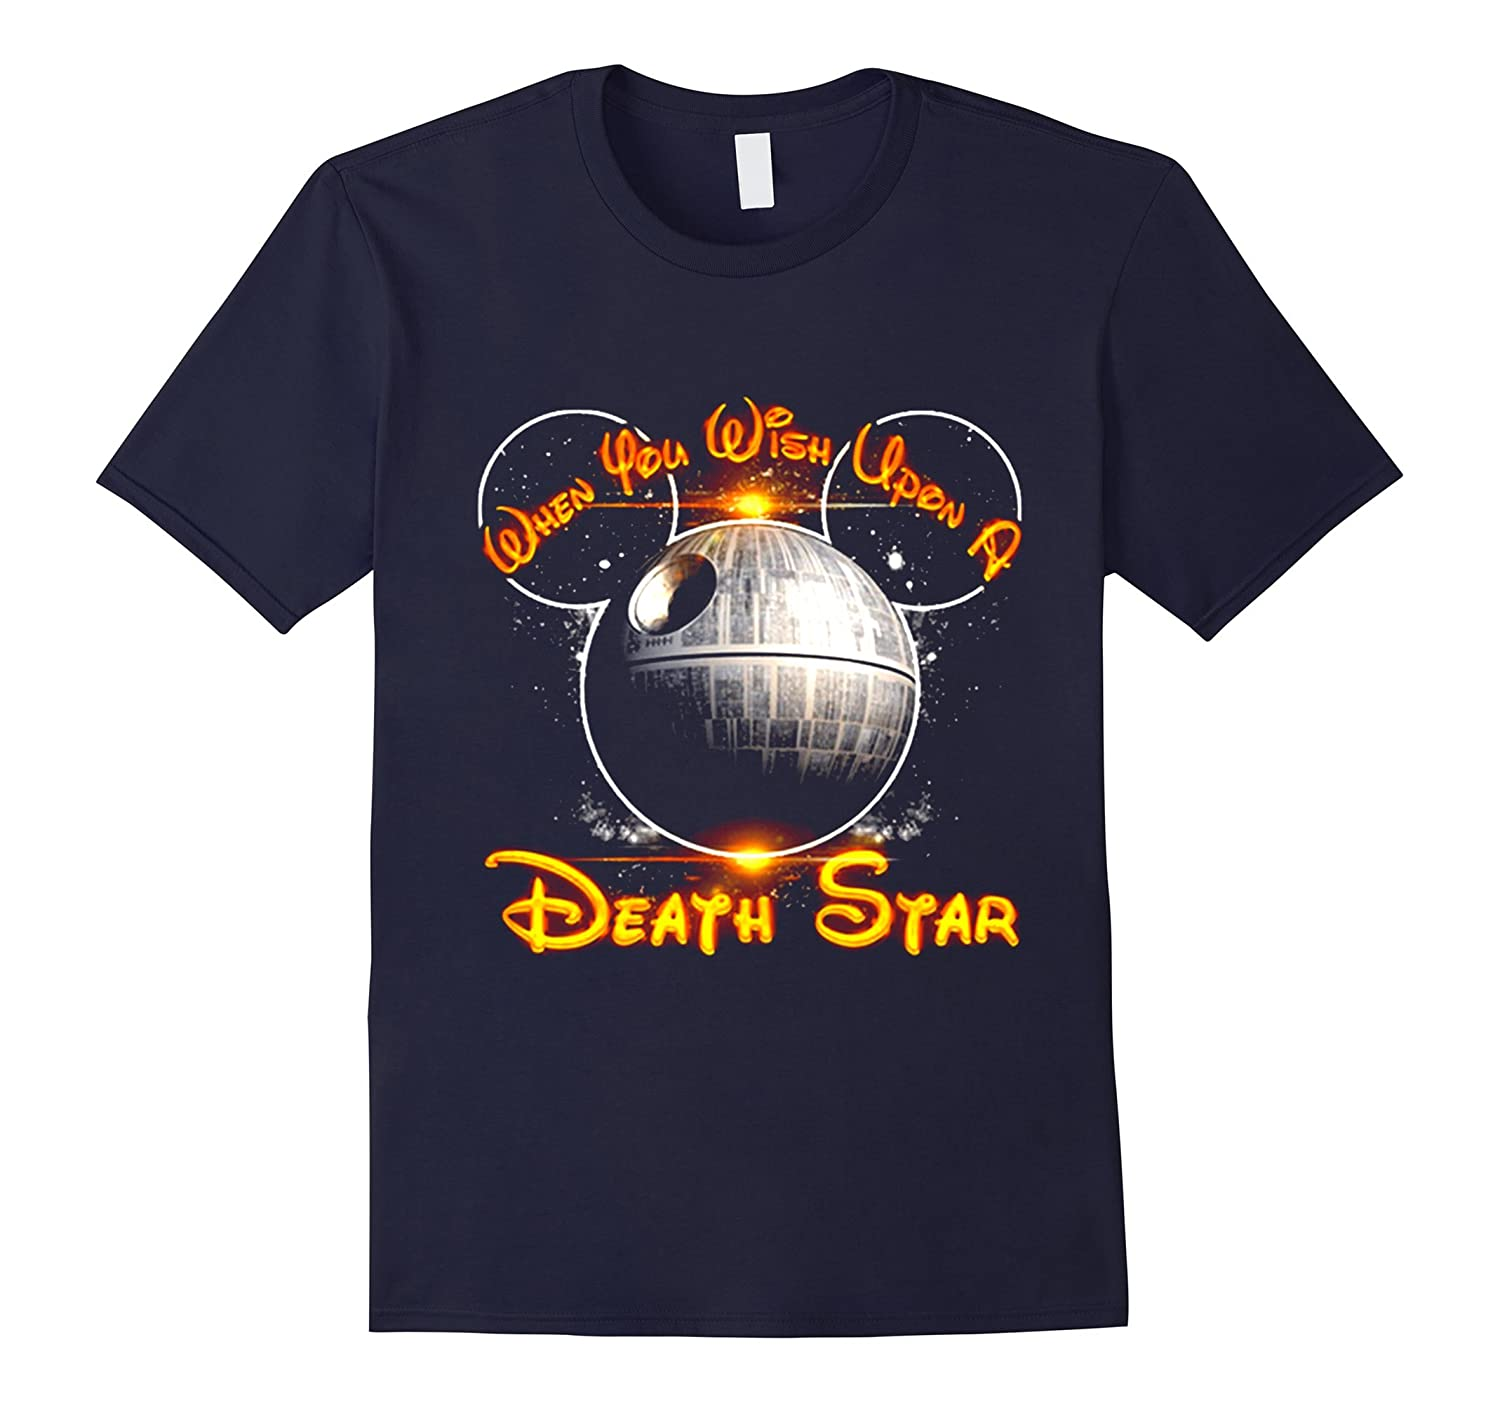 When You Wish Upon A Death Star T-Shirt-TD